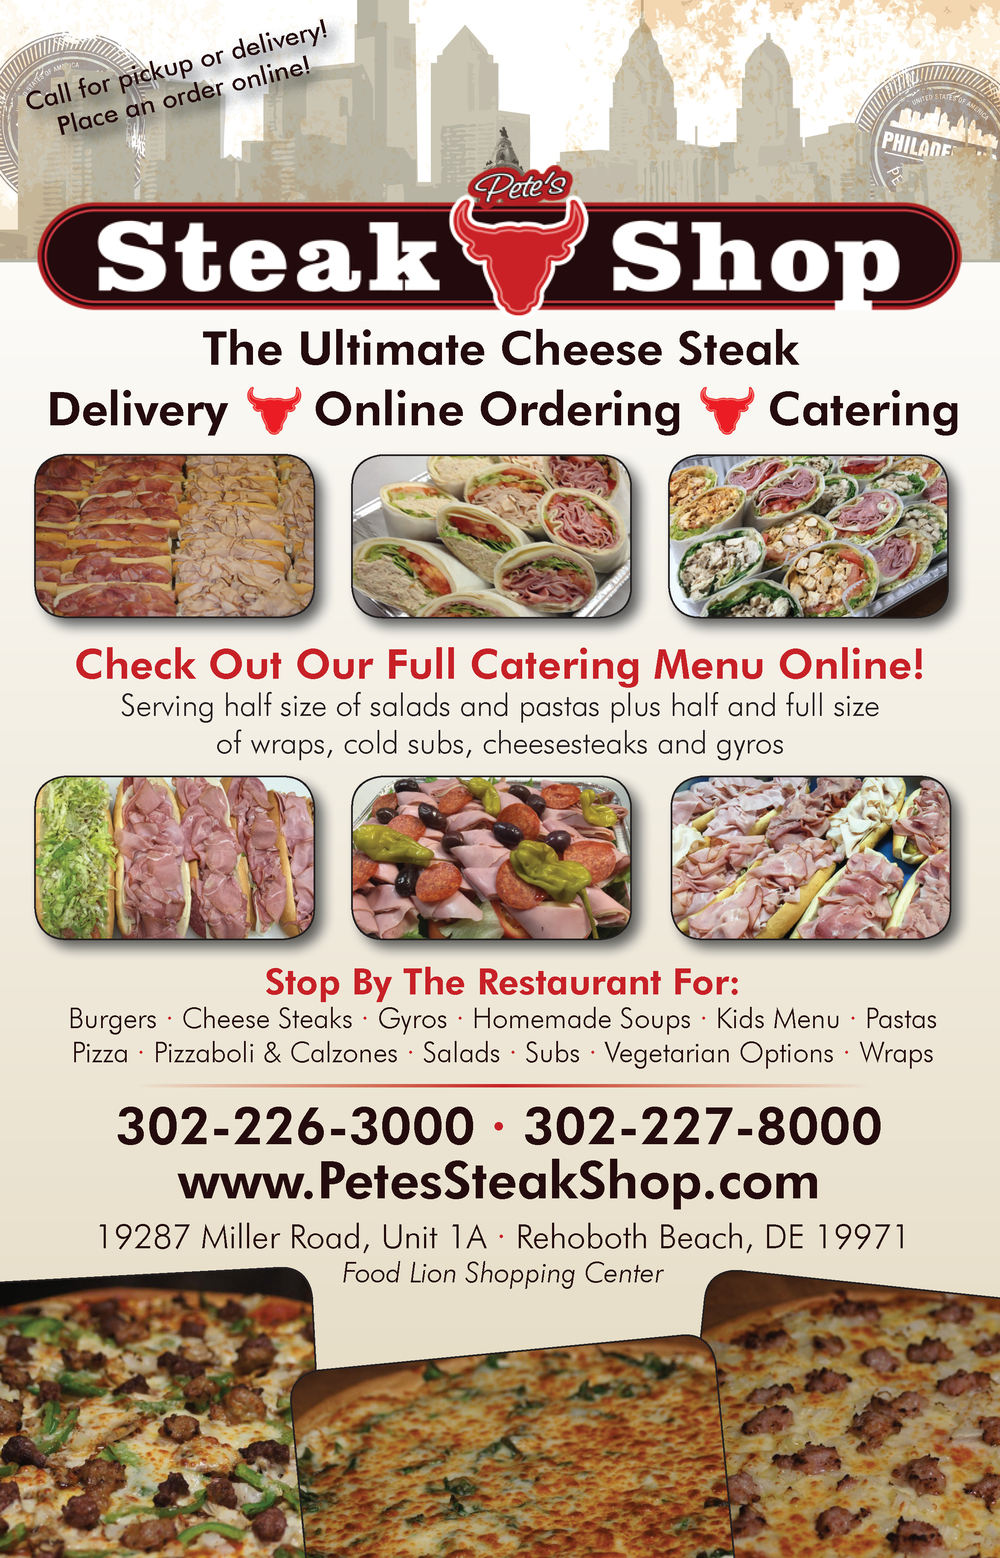 Pete's Steak Shop